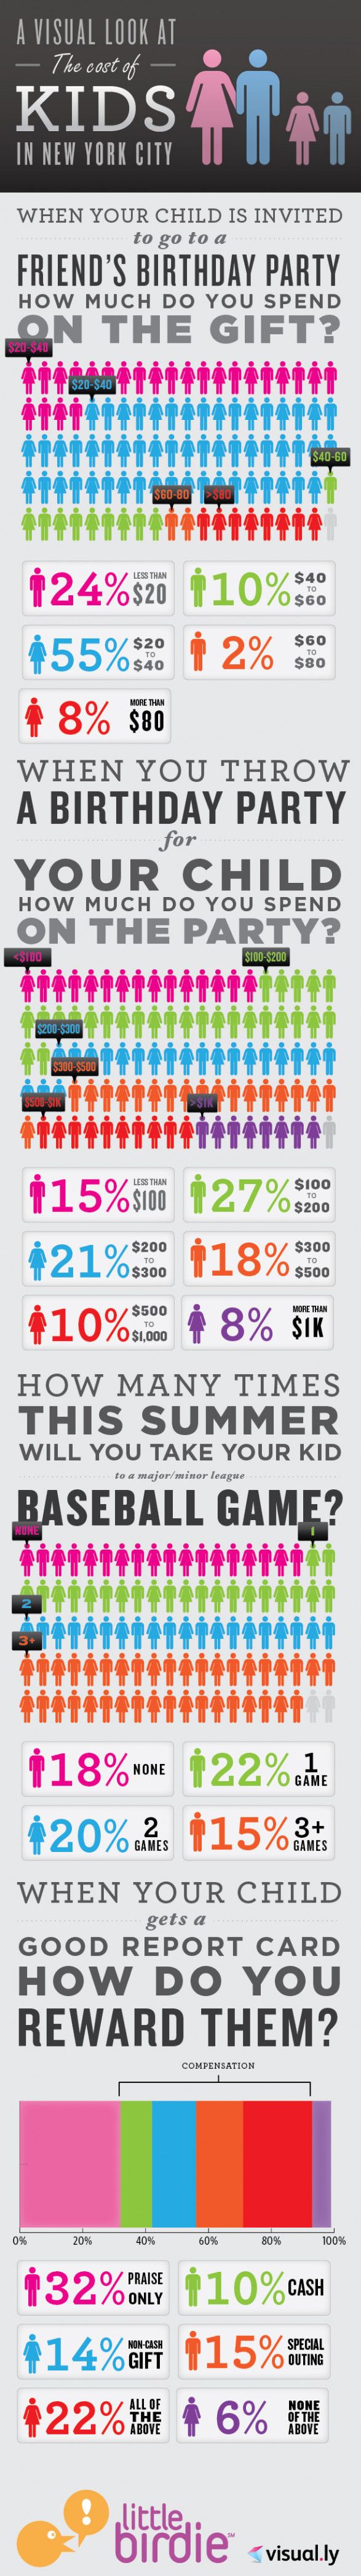 A Visual Look At The Cost of Kids In New York City